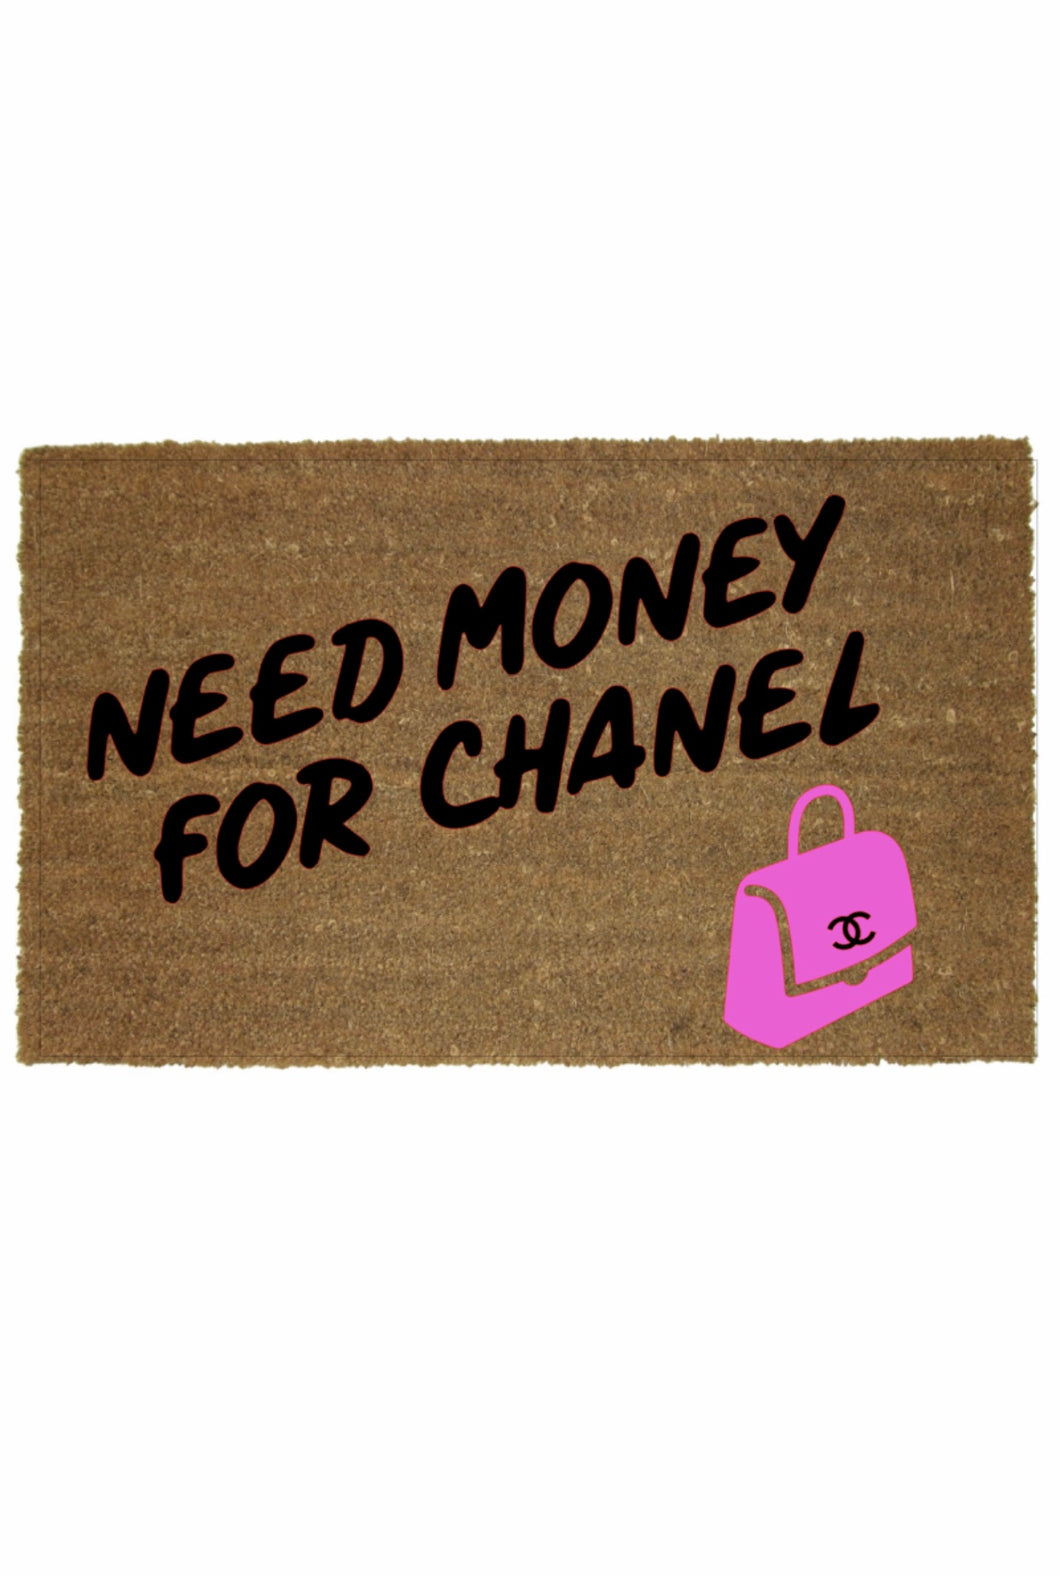 NEED MONEY FOR CHANEL MAT